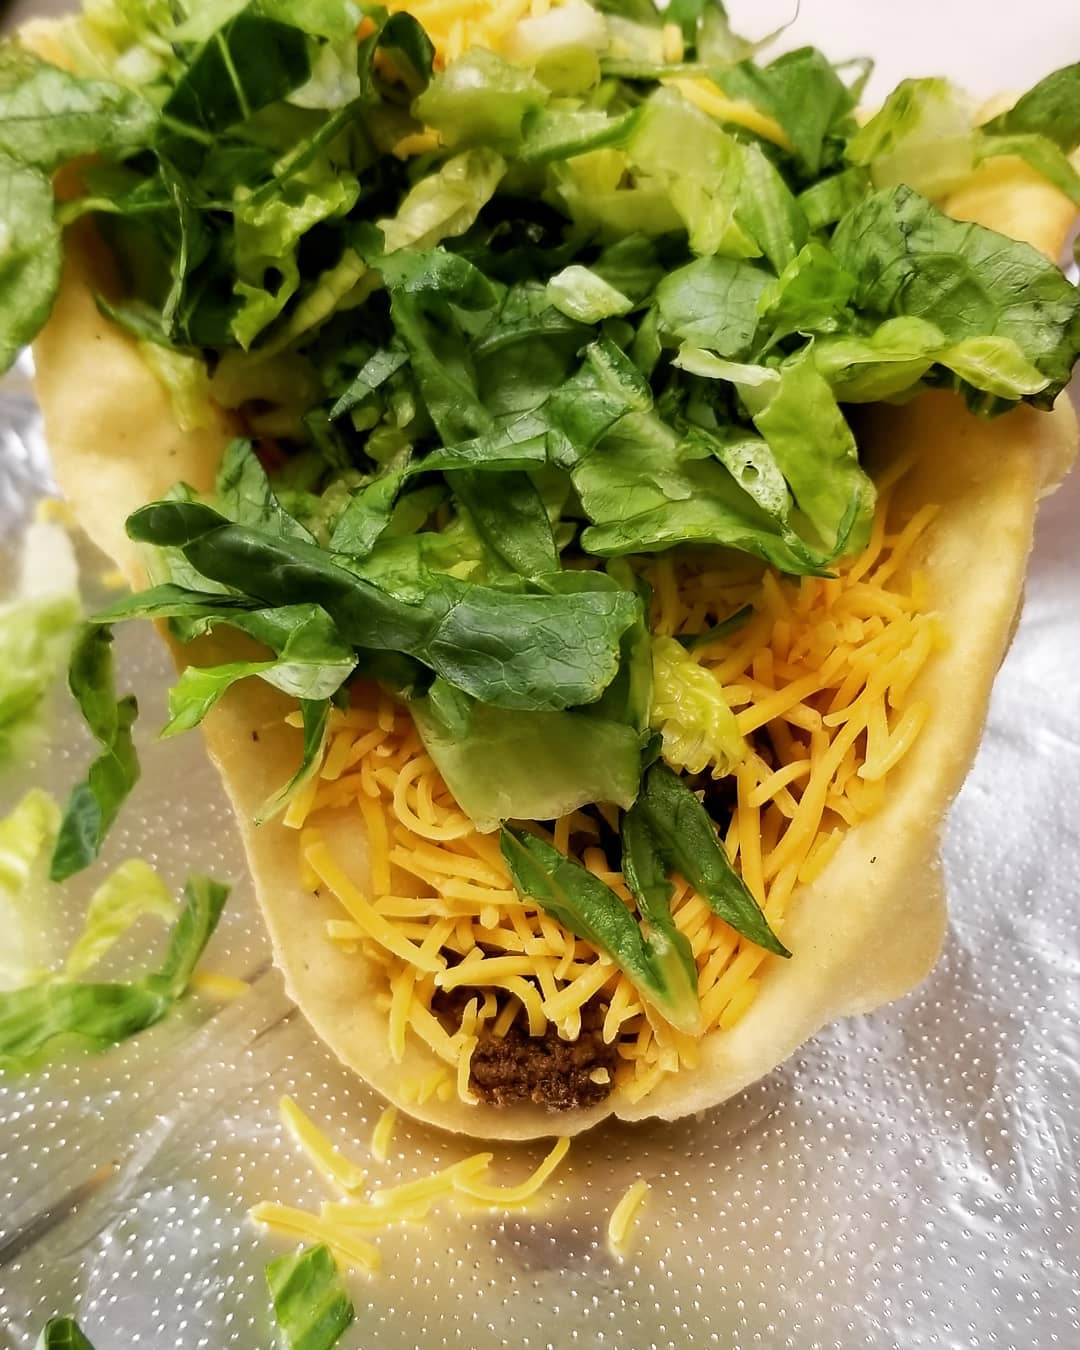 Hungry Hippie Tacos makes their fry bread for their fry bread tacos and fry bread desserts in house daily